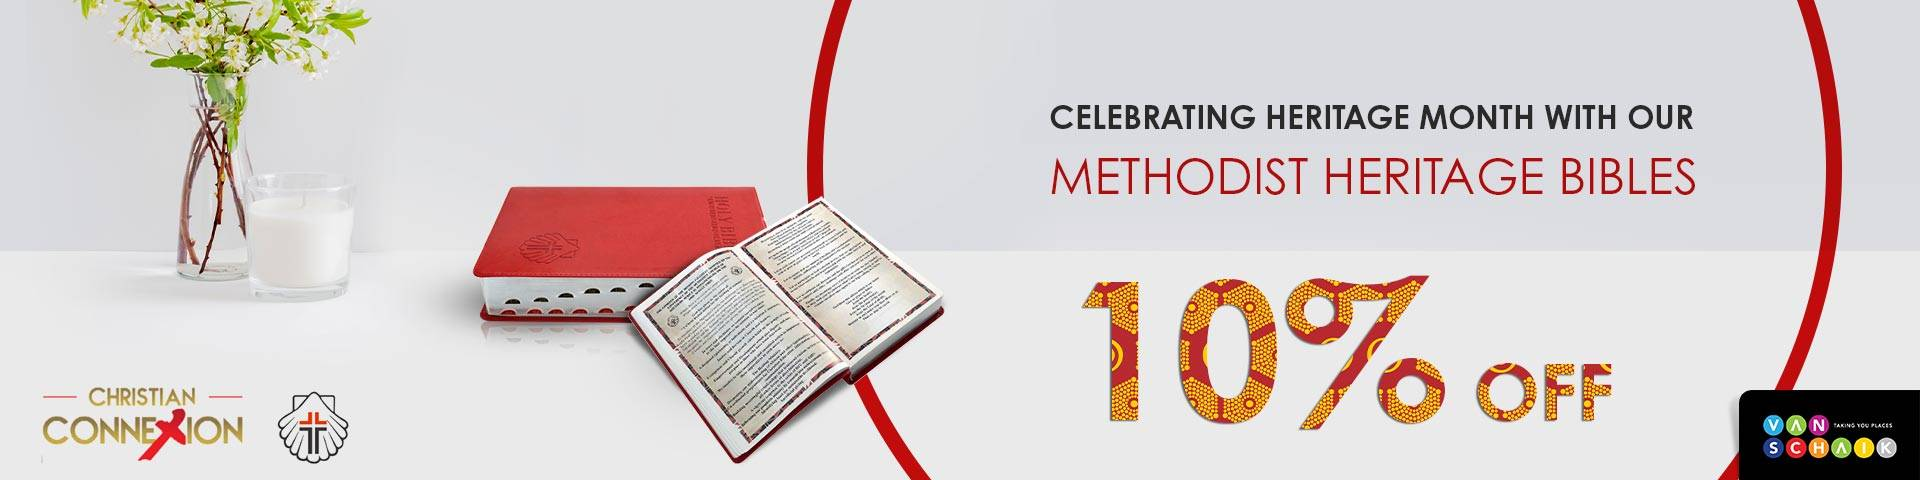 Methodist Heritage Bible